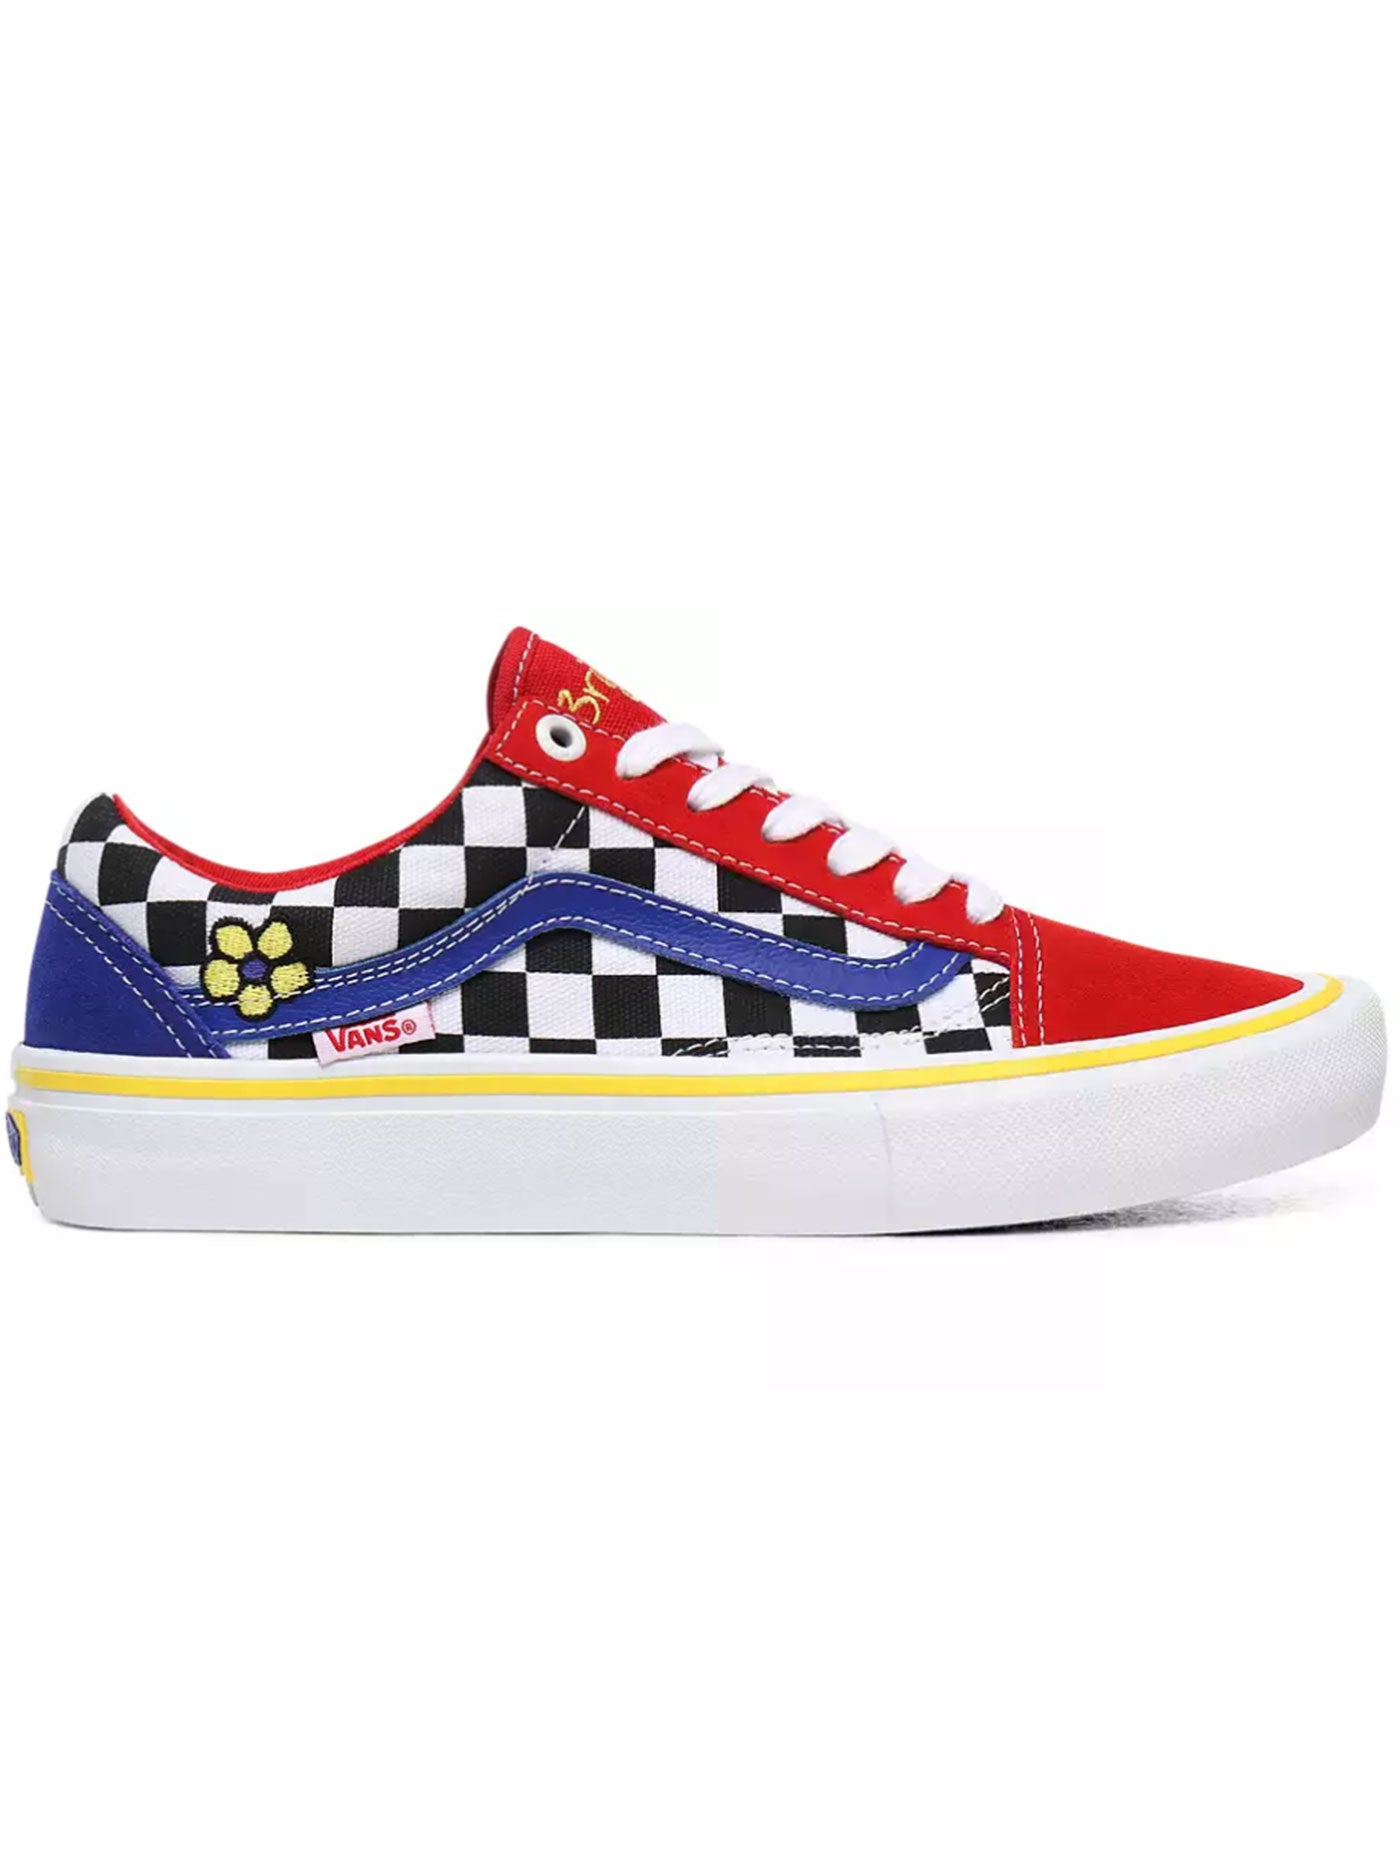 Old Skool Pro x Brighton Zeuner Shoes (Women)